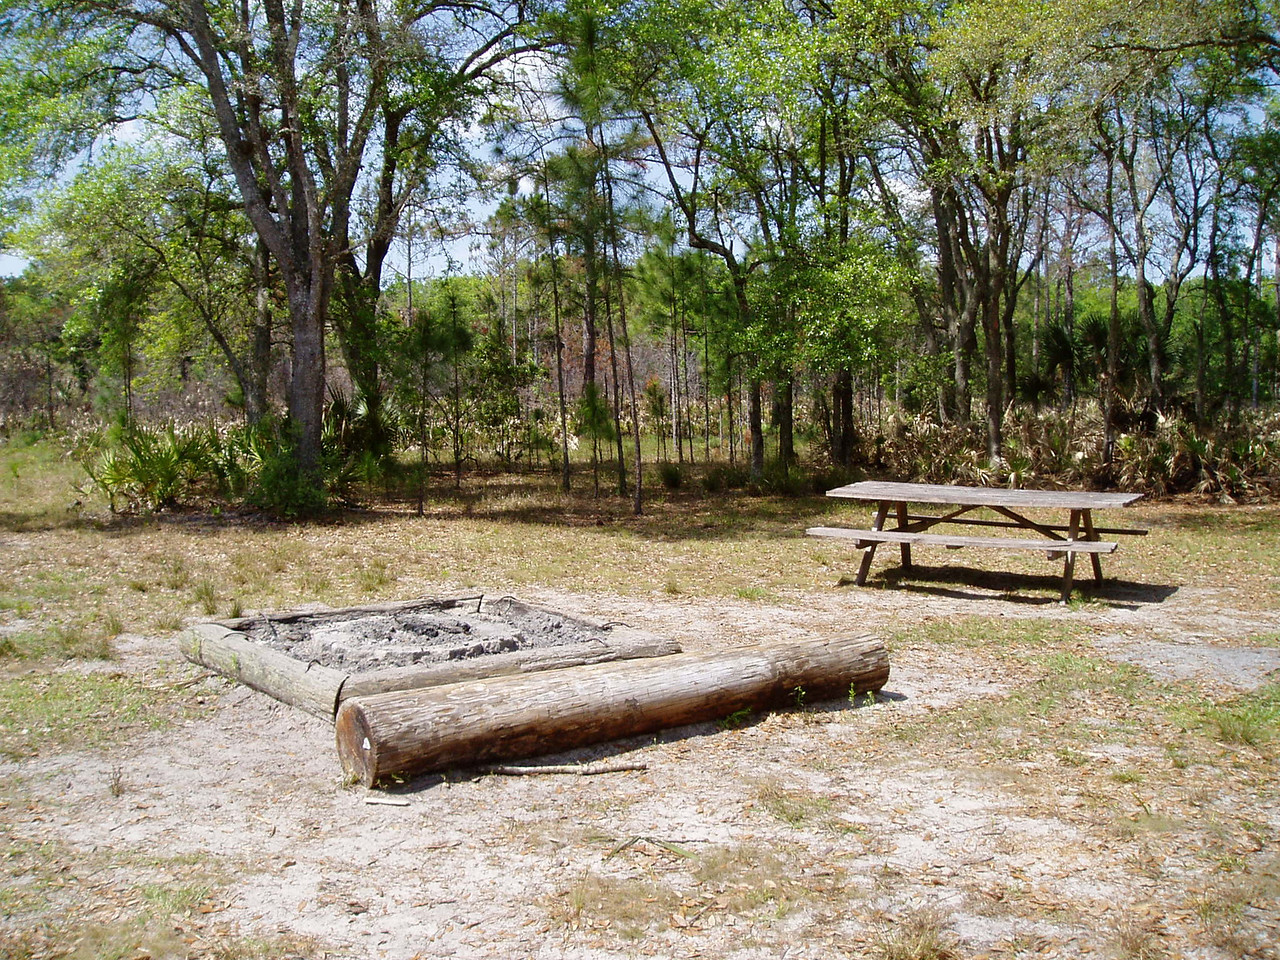 Campsite at Seminole Ranch<br /> PHOTO CREDIT: Robert Coveney / Florida Trail Association